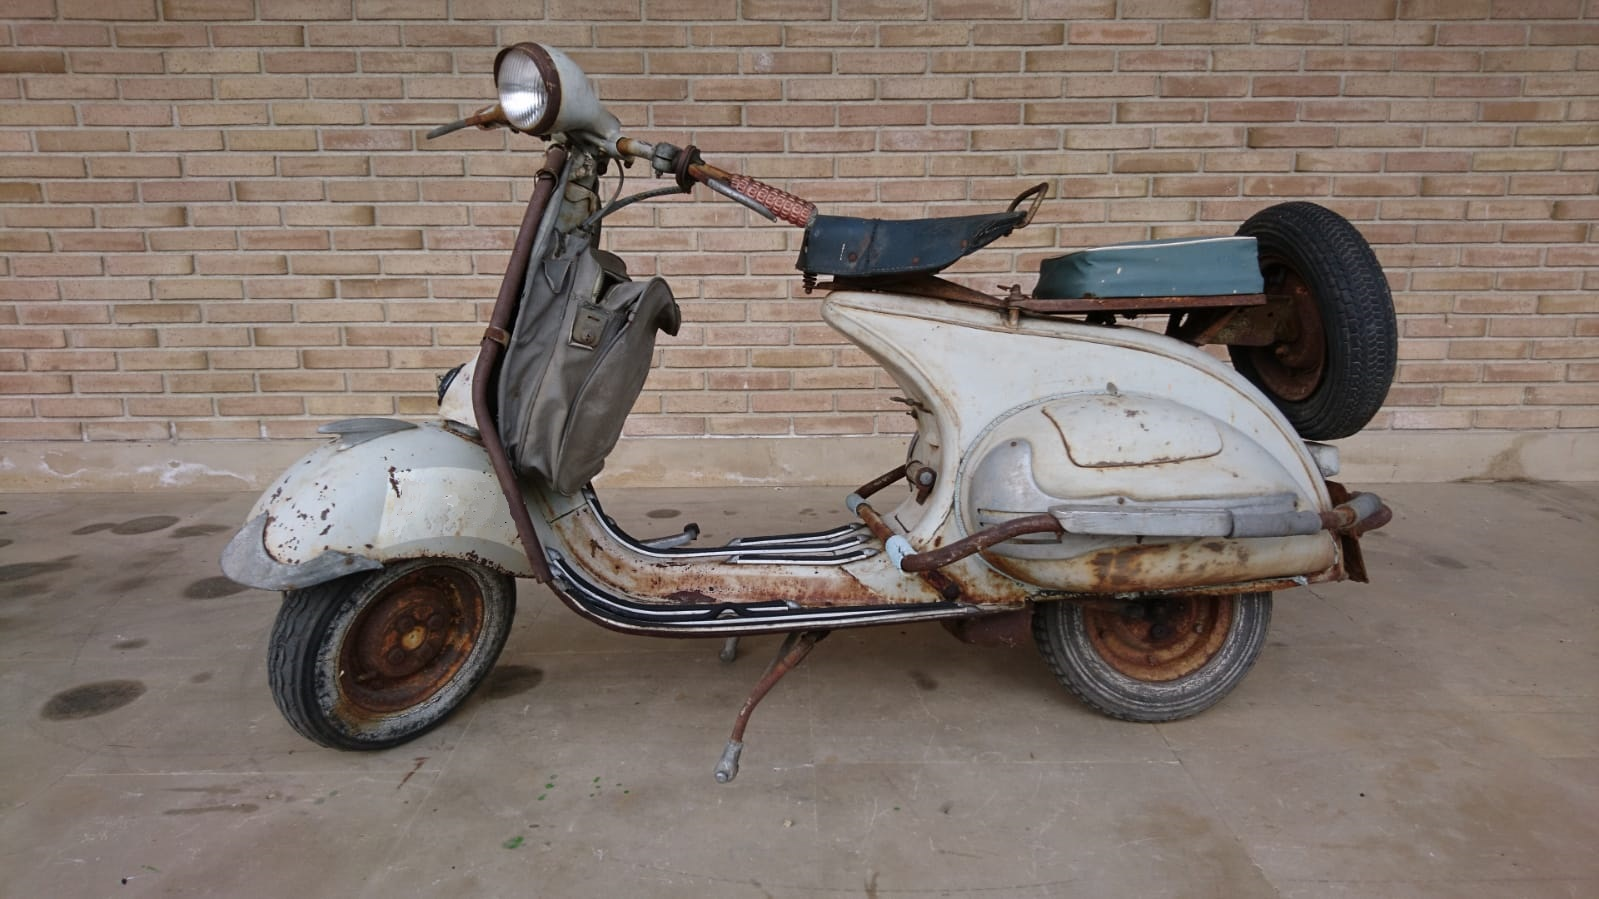 1956 Motovespa 125 N in its original factory paint..